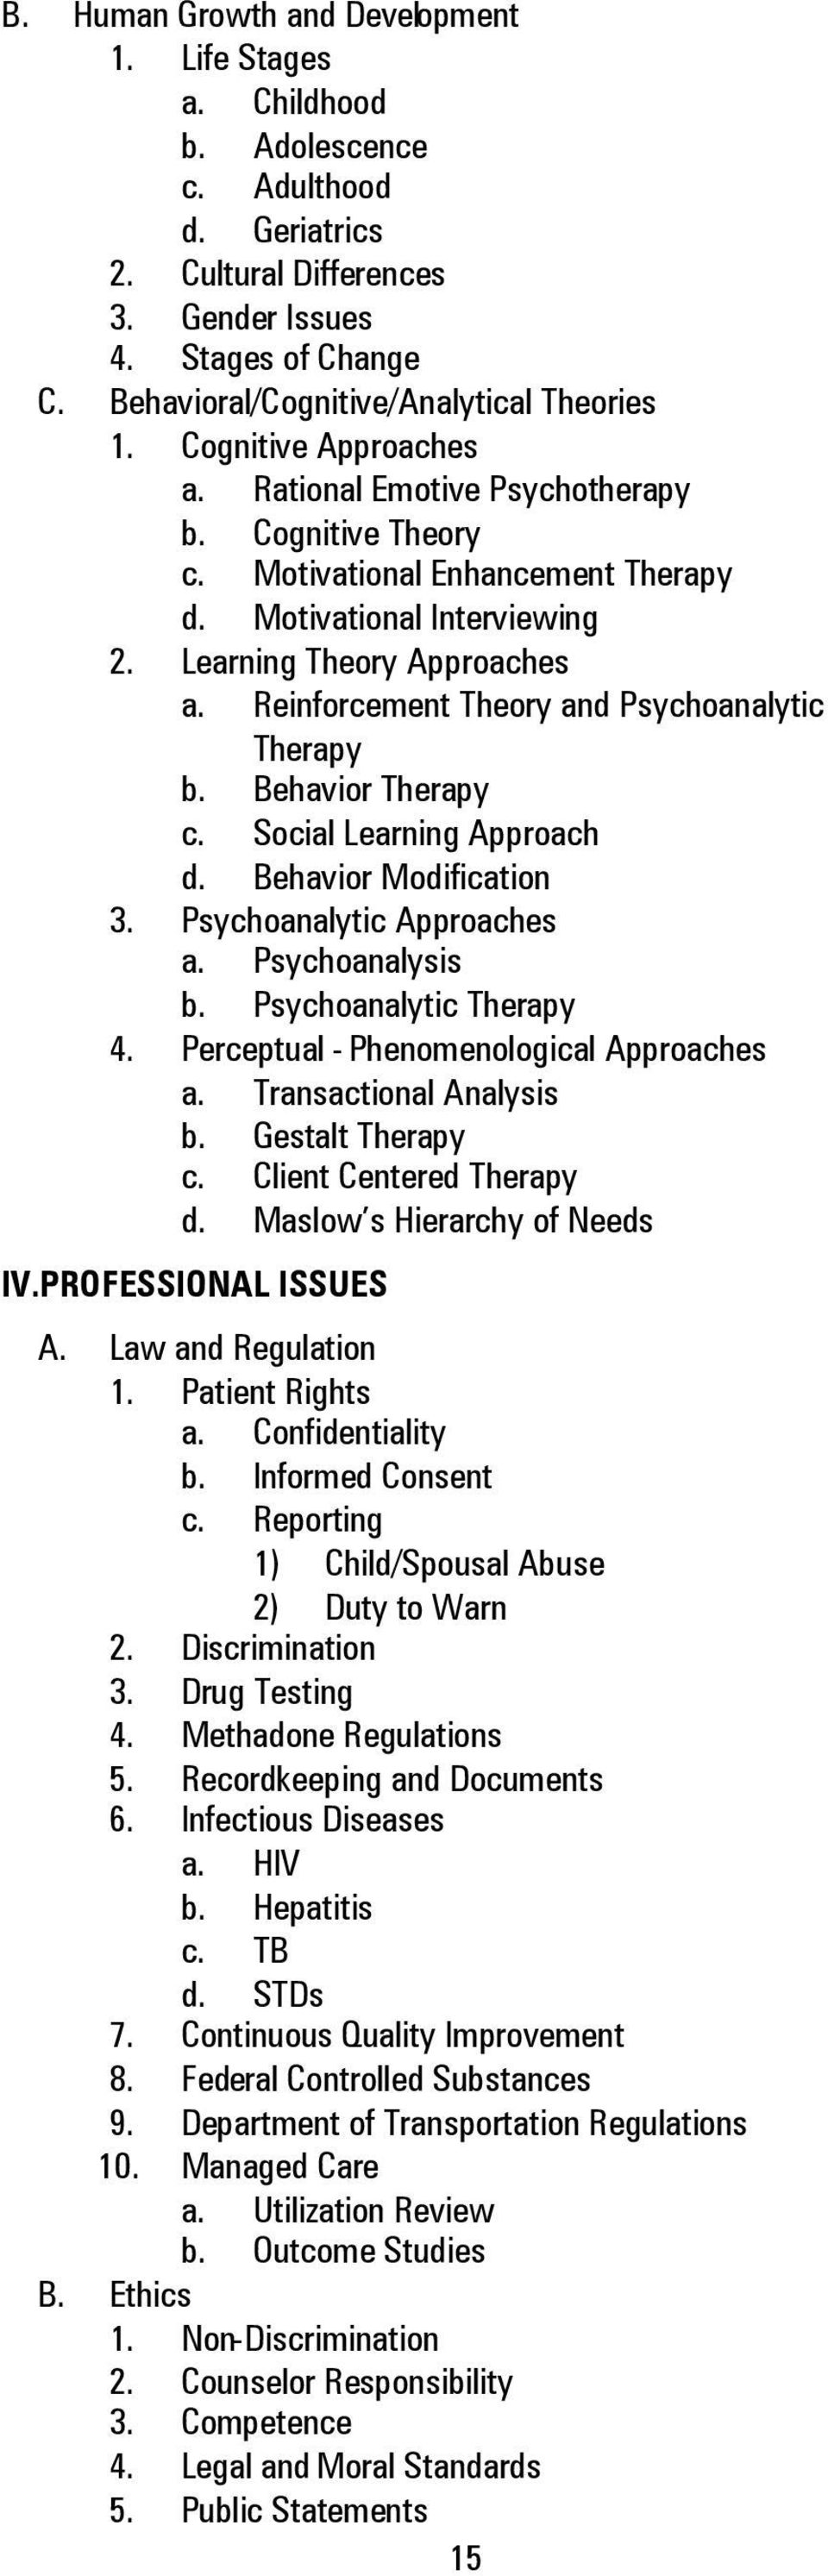 Learning Theory Approaches a. Reinforcement Theory and Psychoanalytic Therapy b. Behavior Therapy c. Social Learning Approach d. Behavior Modification 3. Psychoanalytic Approaches a. Psychoanalysis b.